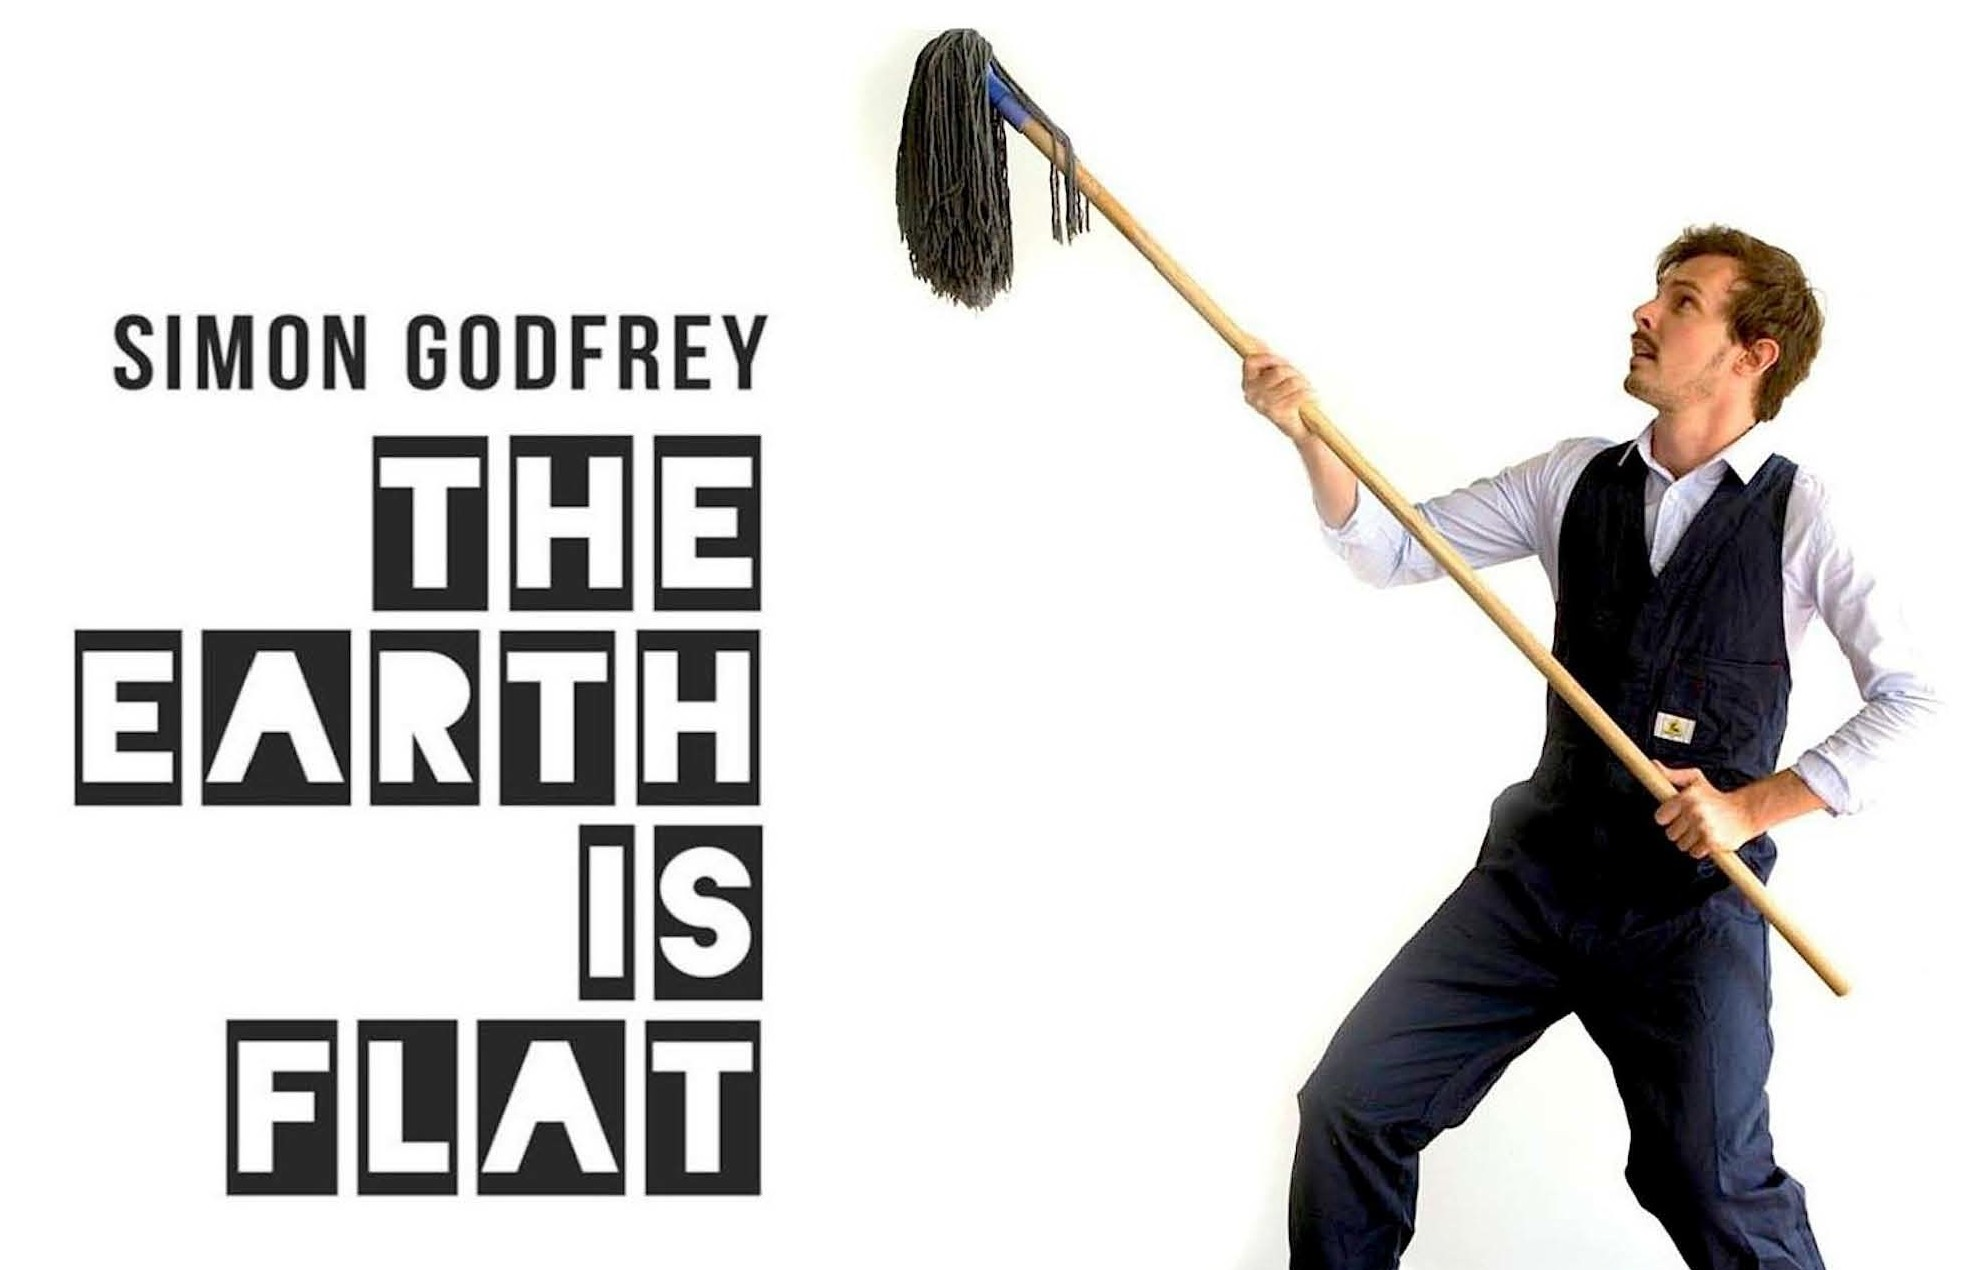 5 Good Reasons To See The Earth is Flat by Simon Godfrey